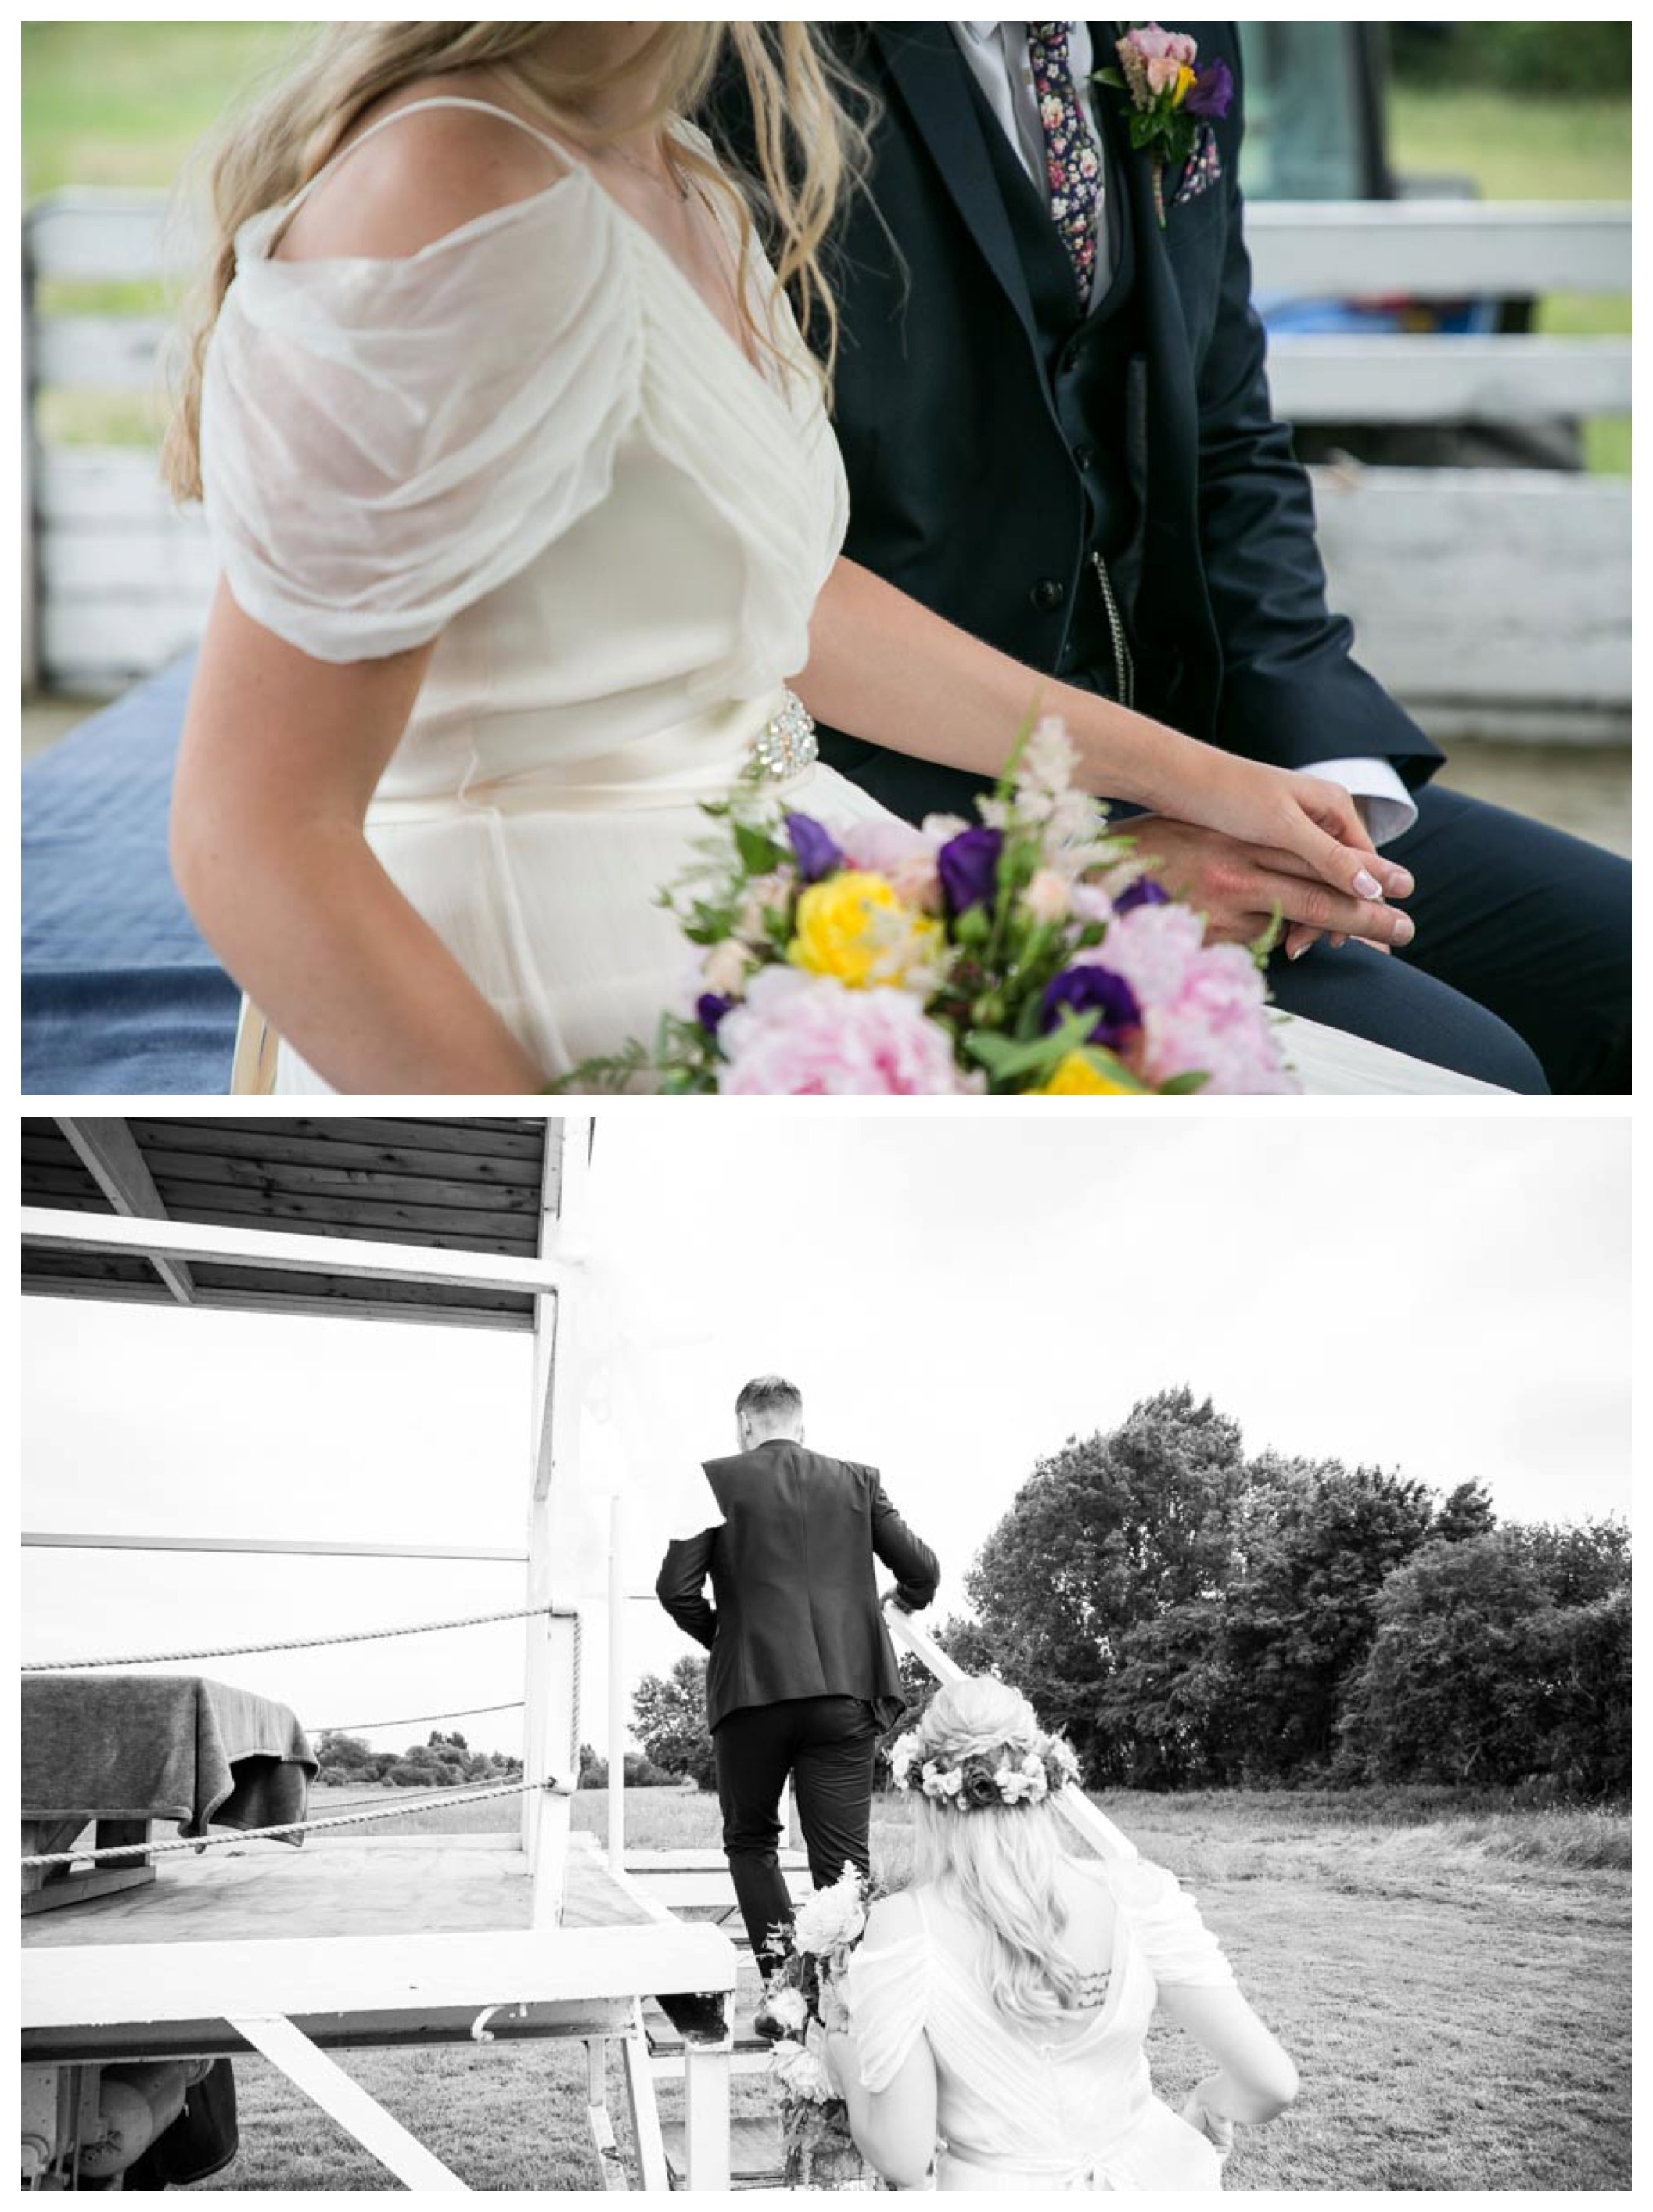 bride and groom getting onto tractor trailer and holding hands after their outdoor ceremony